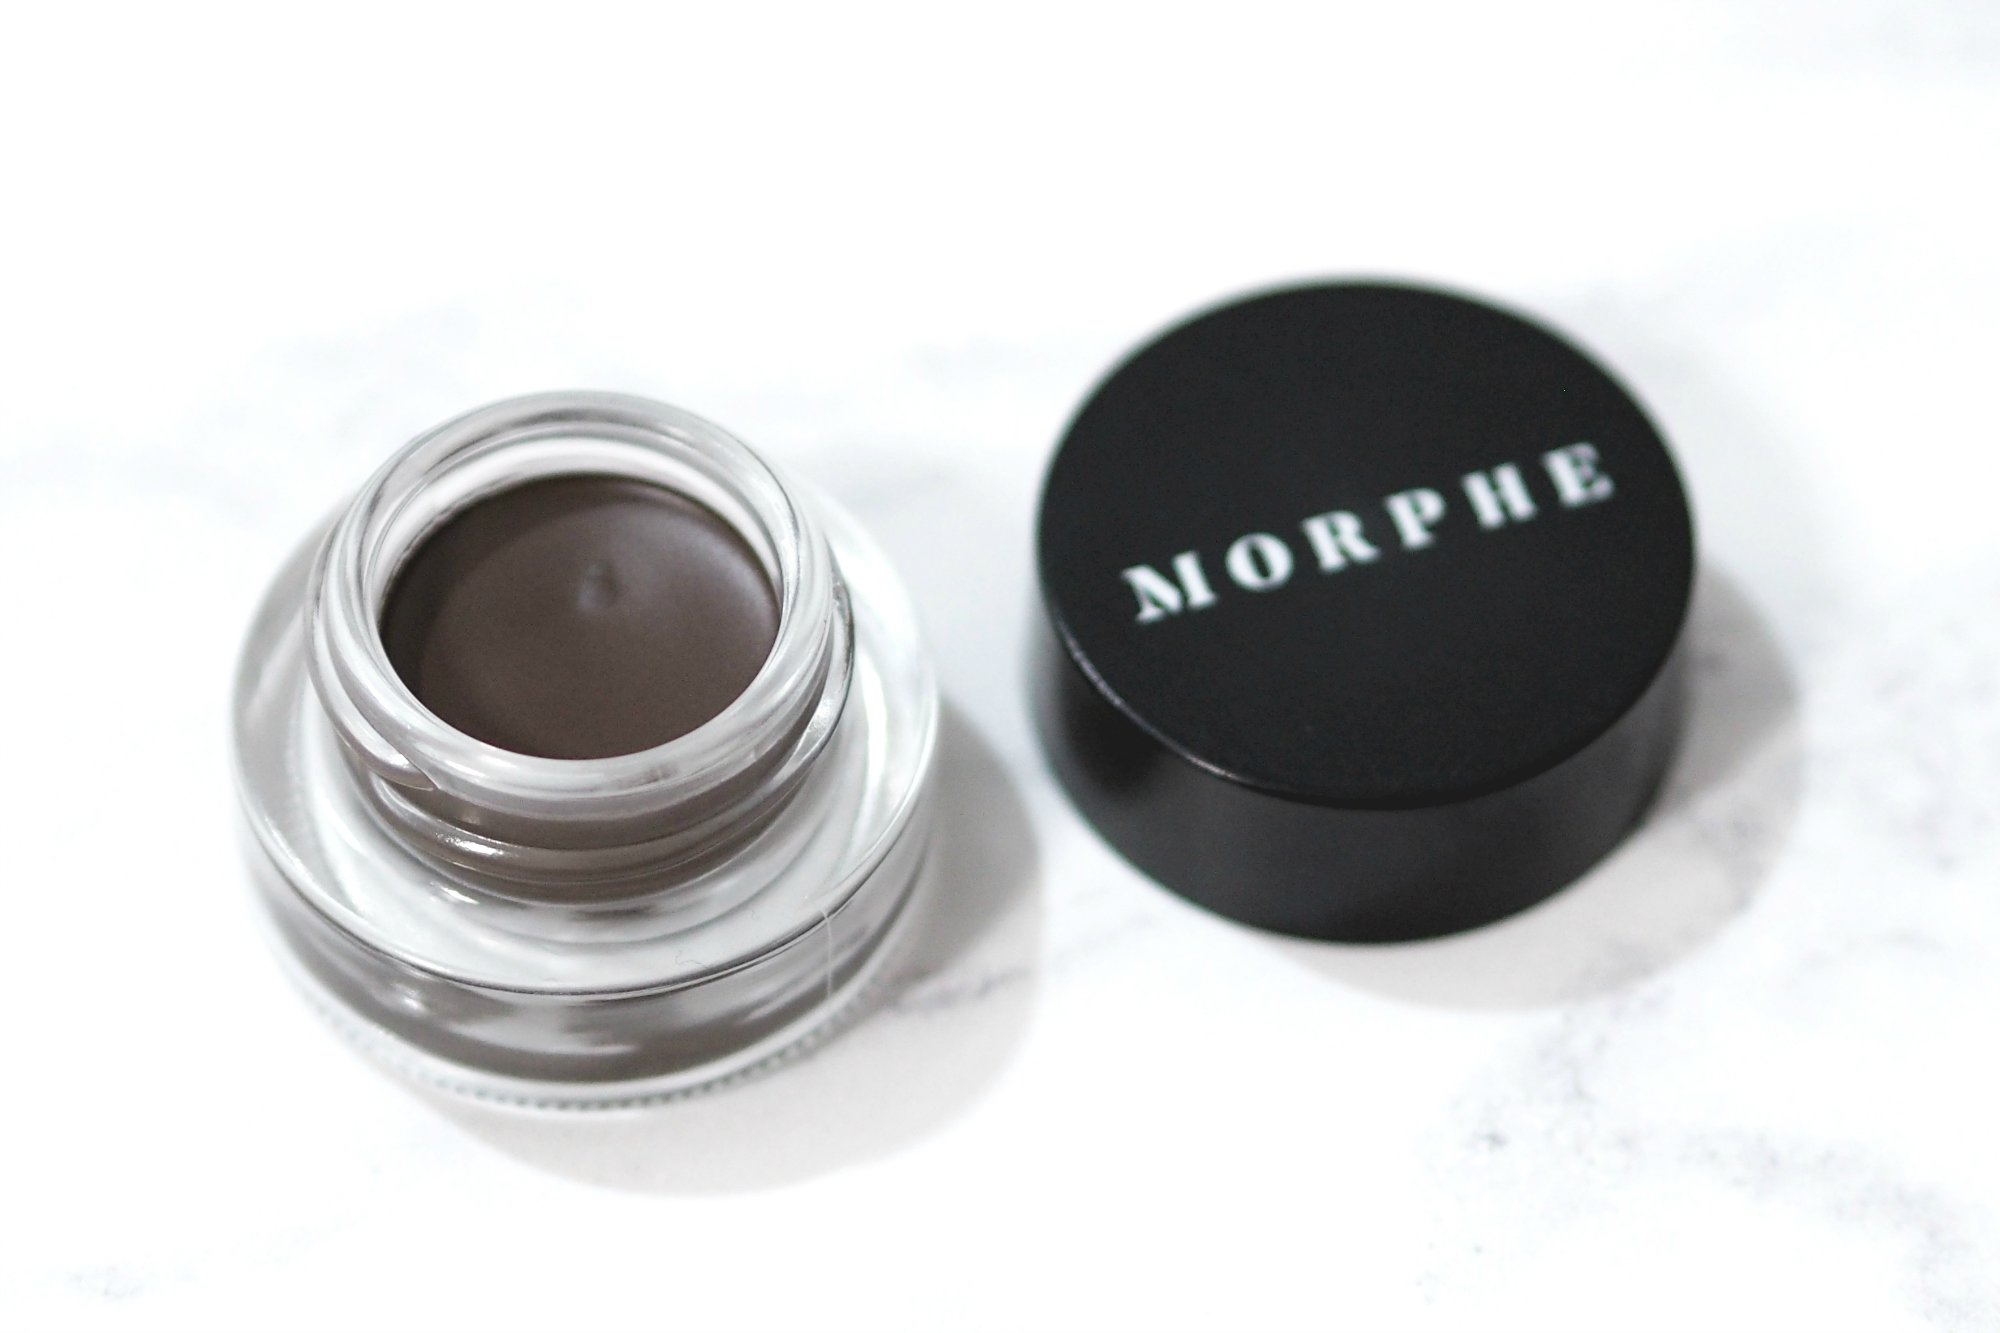 Review and swatches of the Morphe Arch Obsessions Brow Kit in the shade Chocolate Mousse